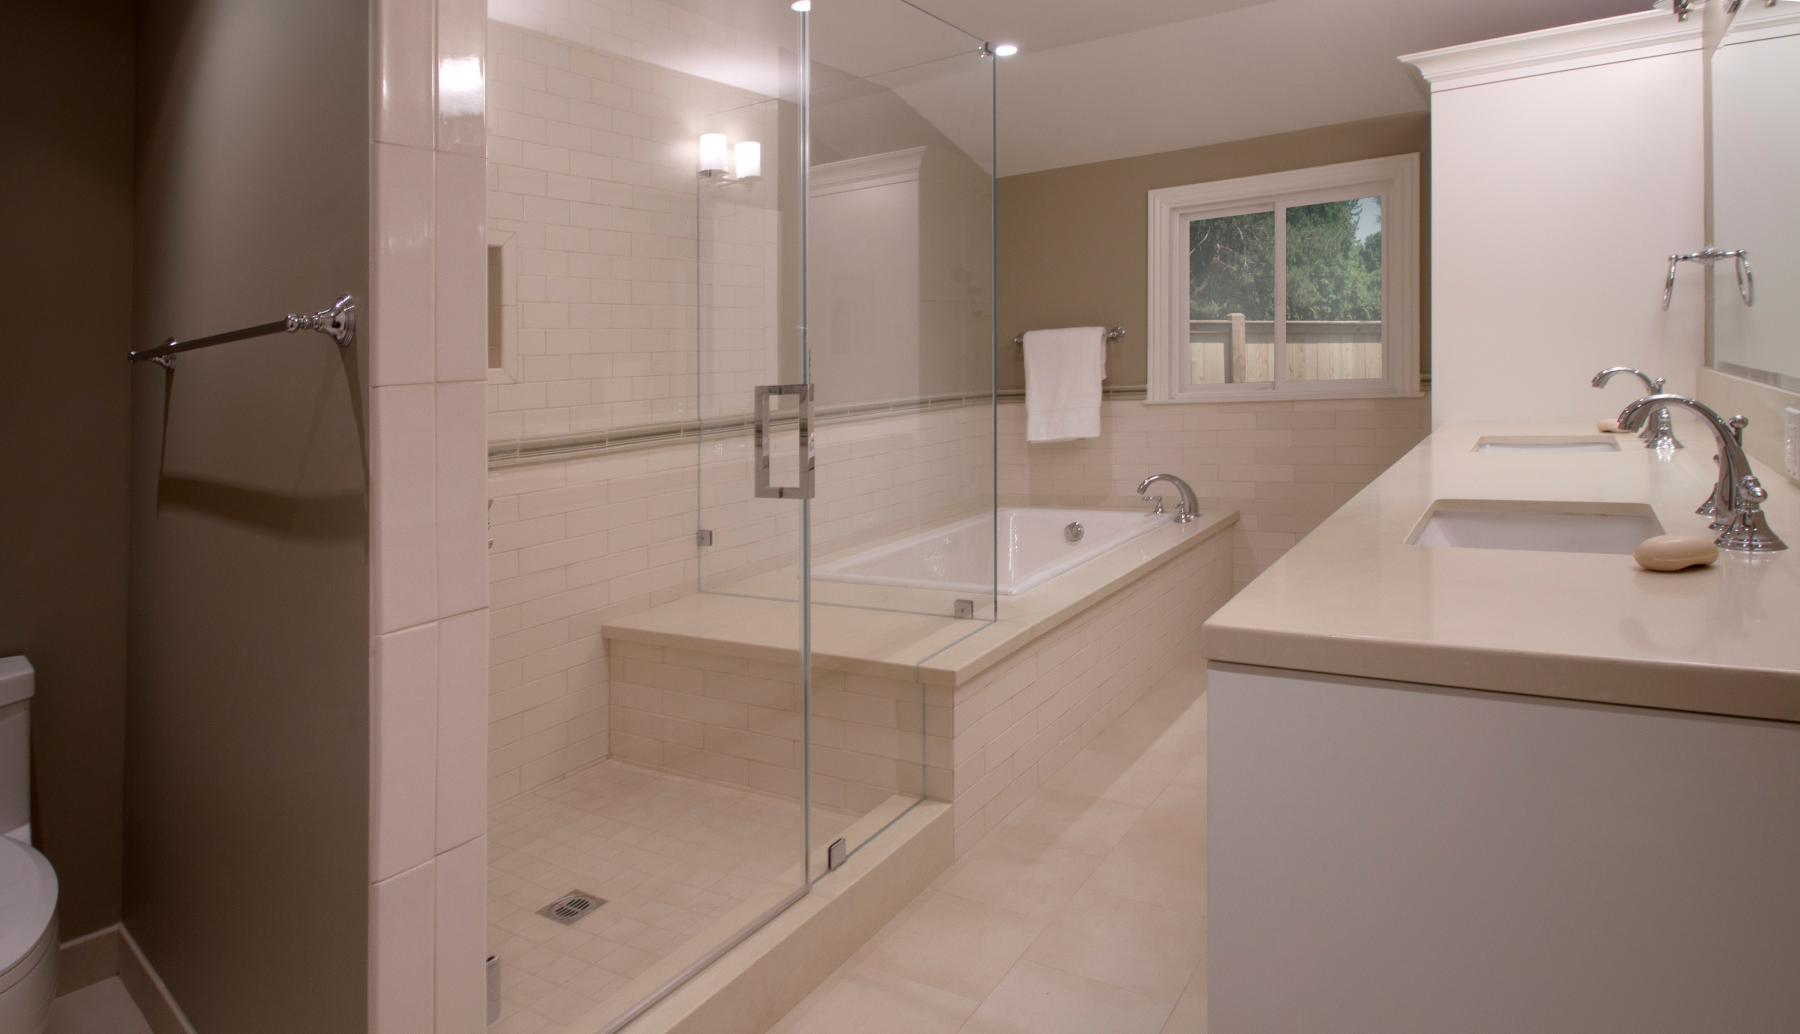 A large frameless glass shower and soaking tub